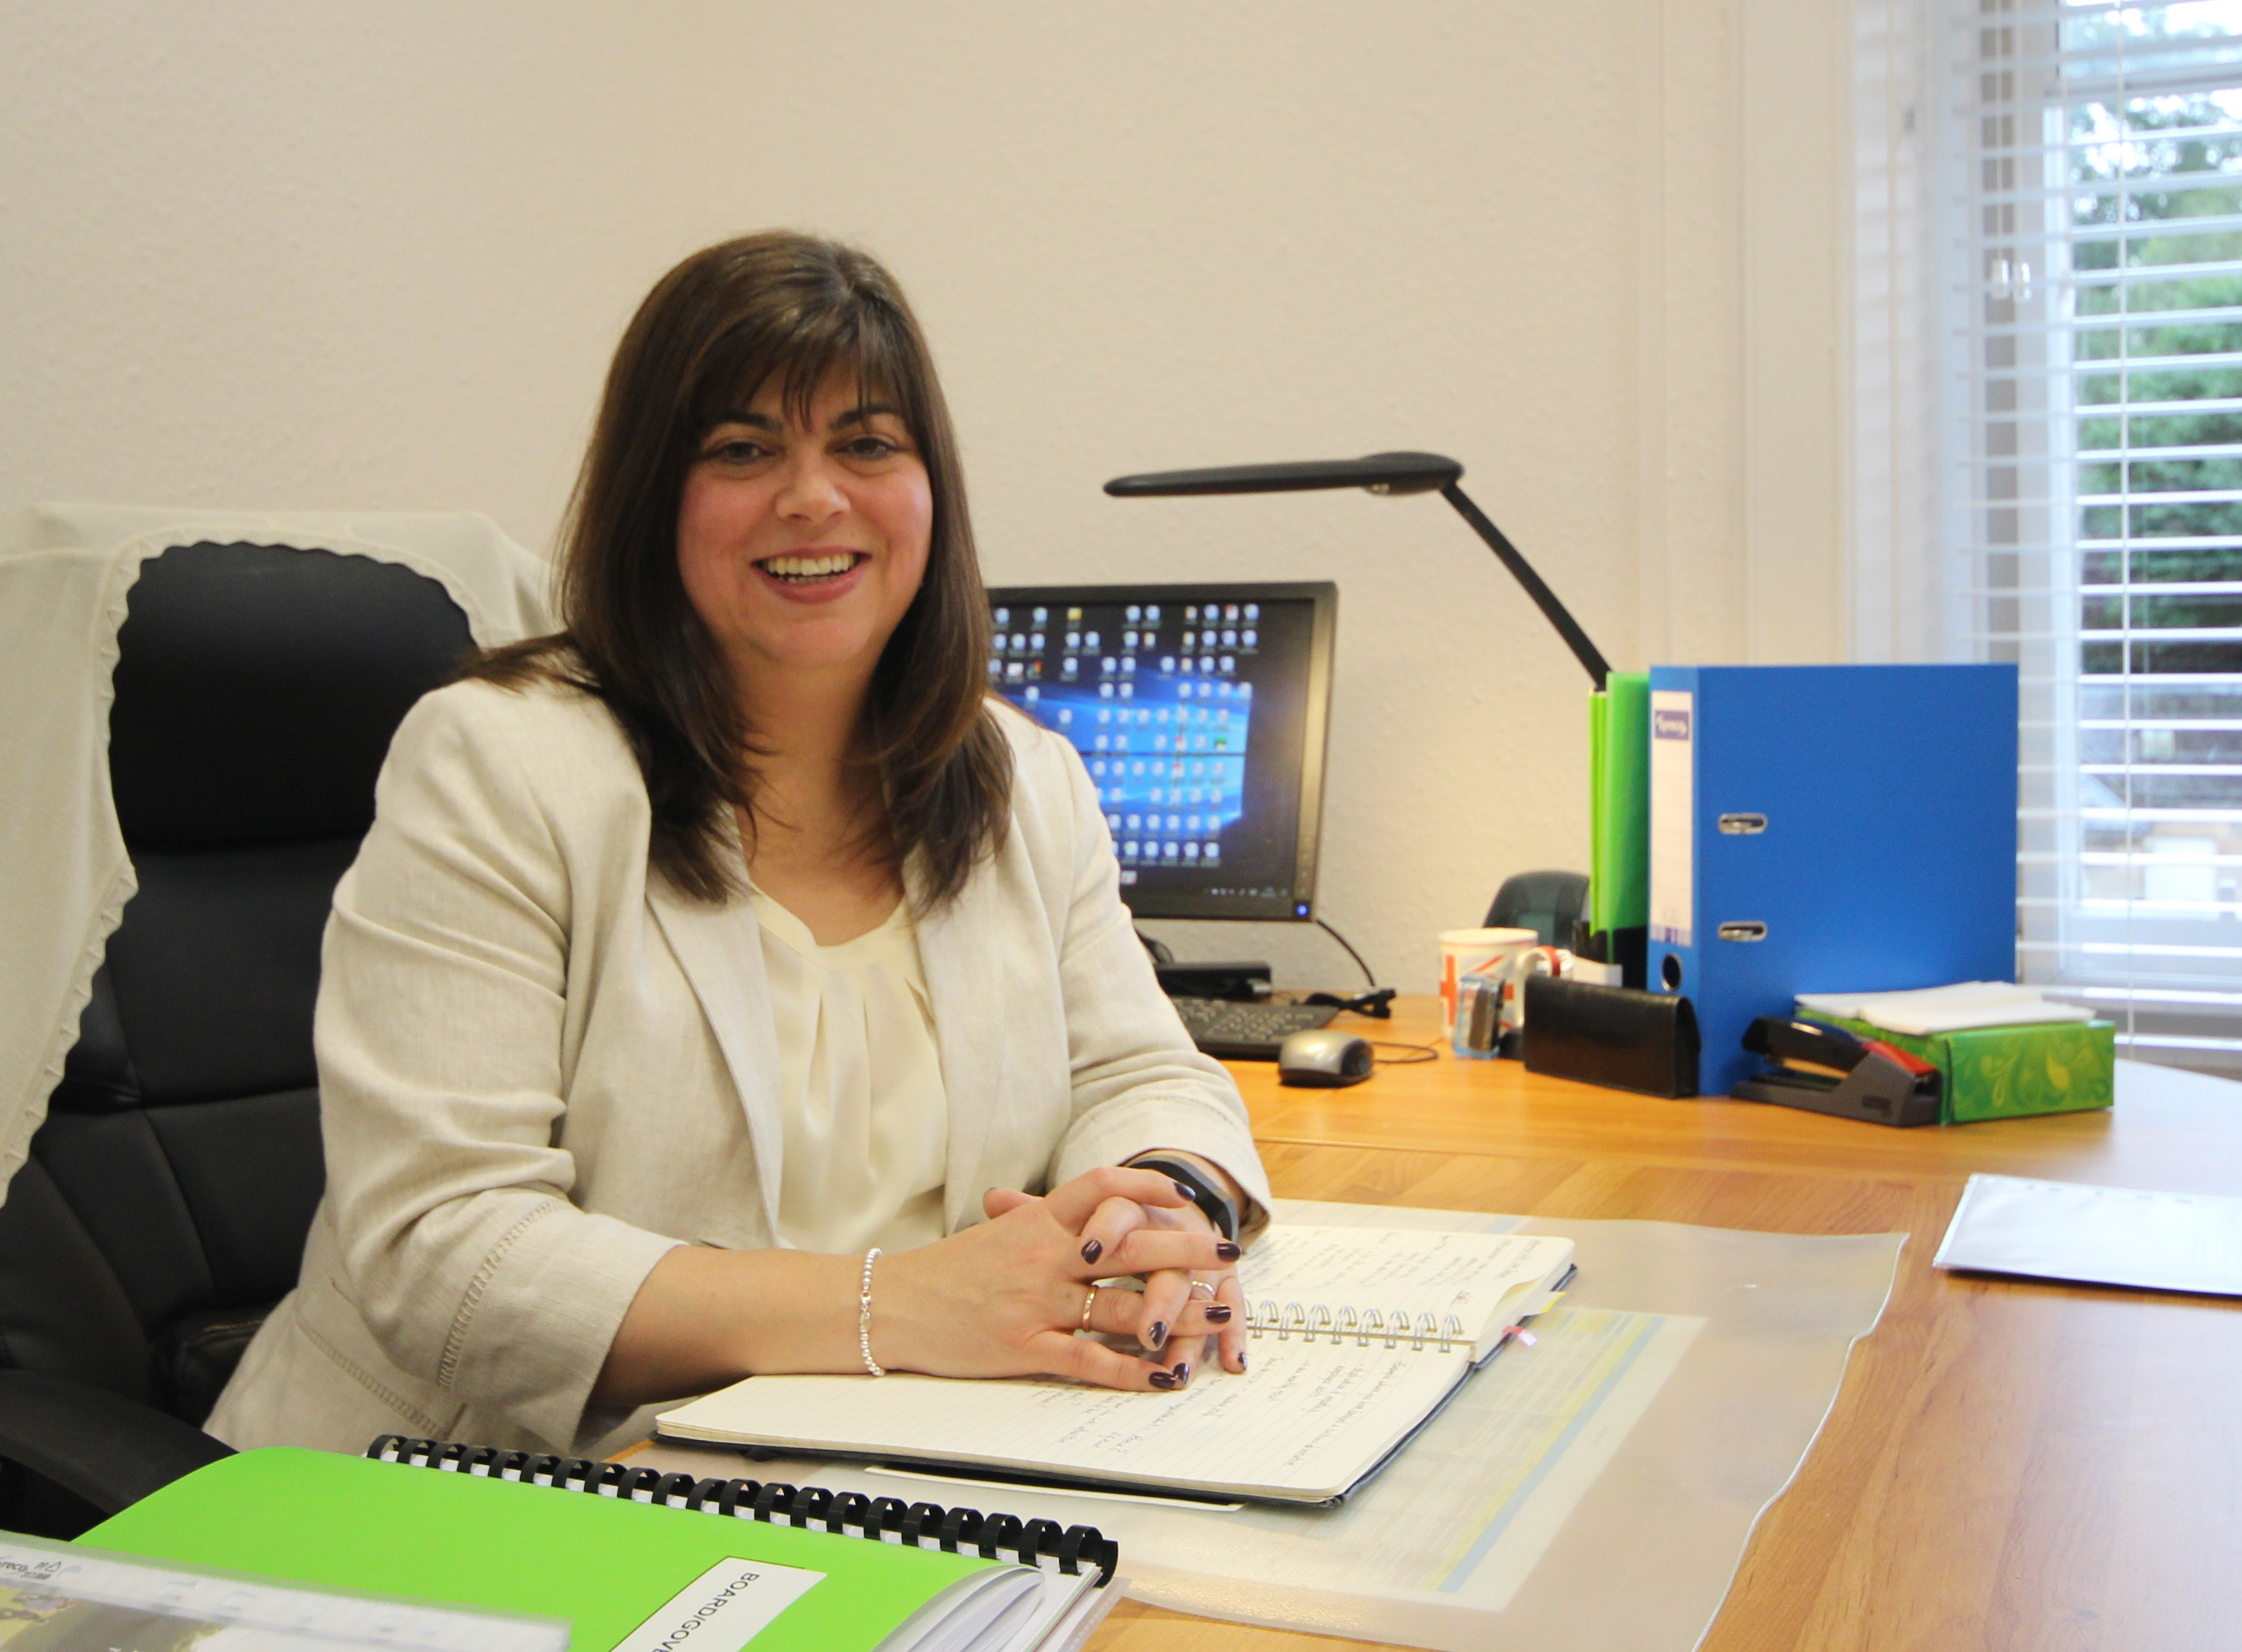 Media release: Margo Paterson appointed as CEO of SYHA Hostelling Scotland